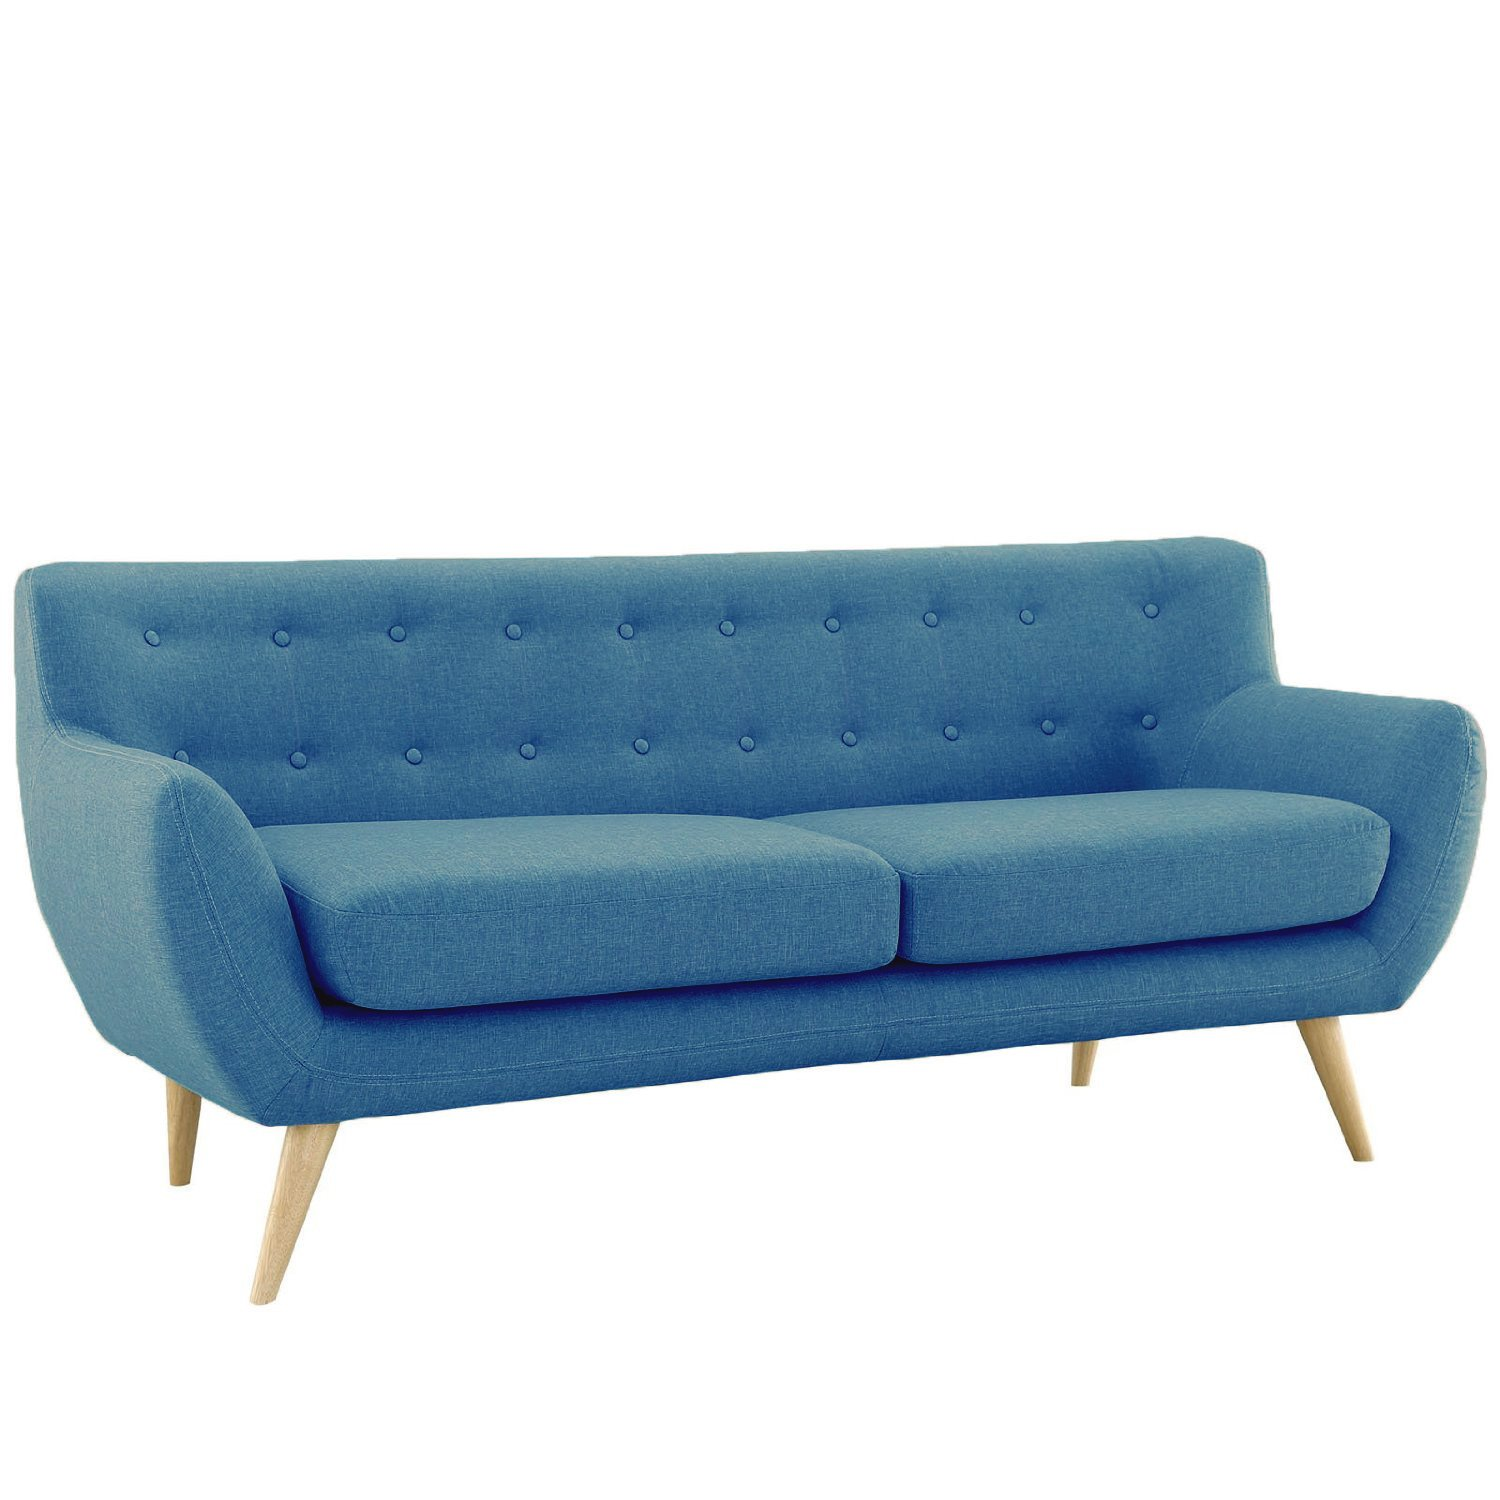 What is a sofa this sleek and stylish doing on amazon bgr for Amazon mid century modern furniture